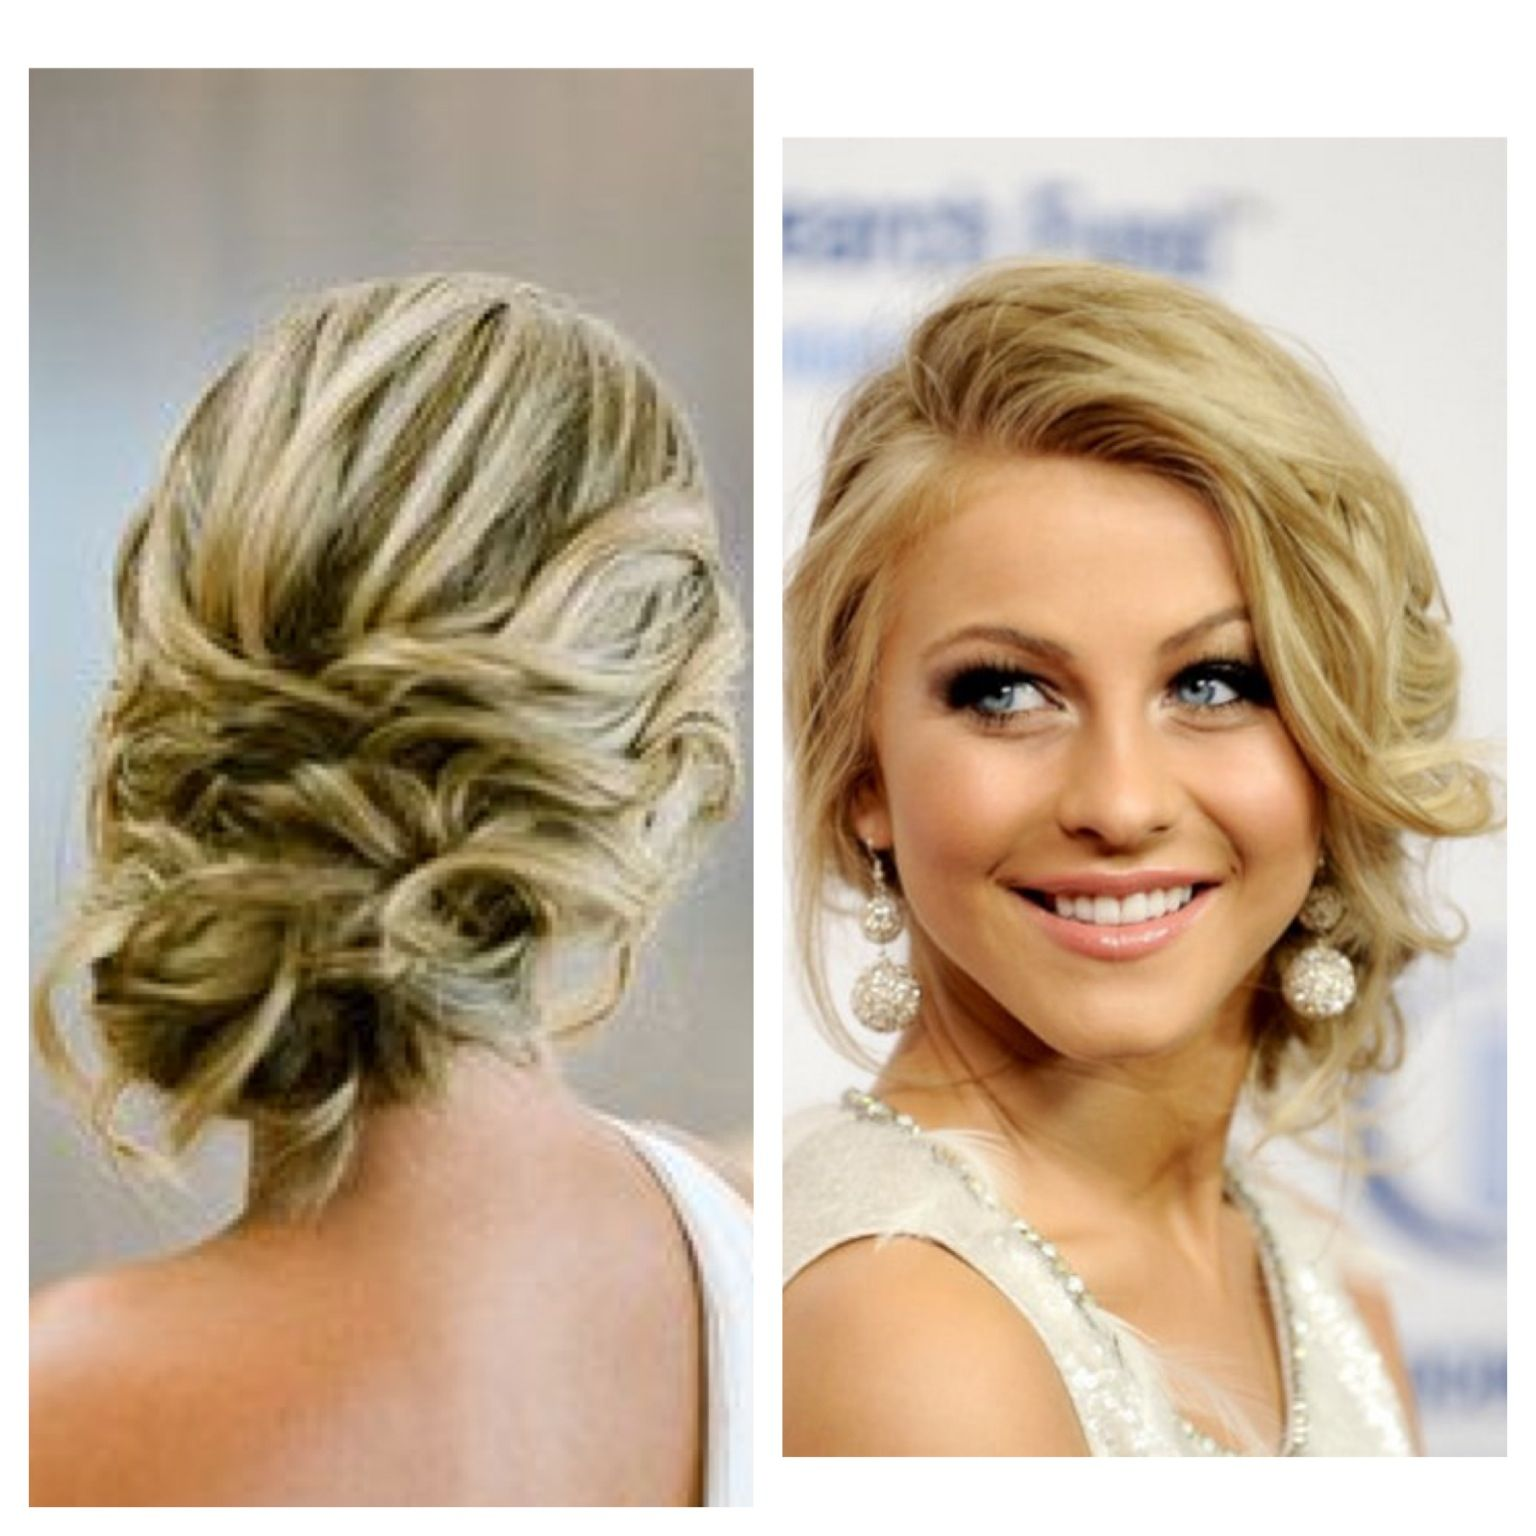 Tremendous 1000 Images About Formal Hair On Pinterest Updo Wedding Hairs Hairstyle Inspiration Daily Dogsangcom